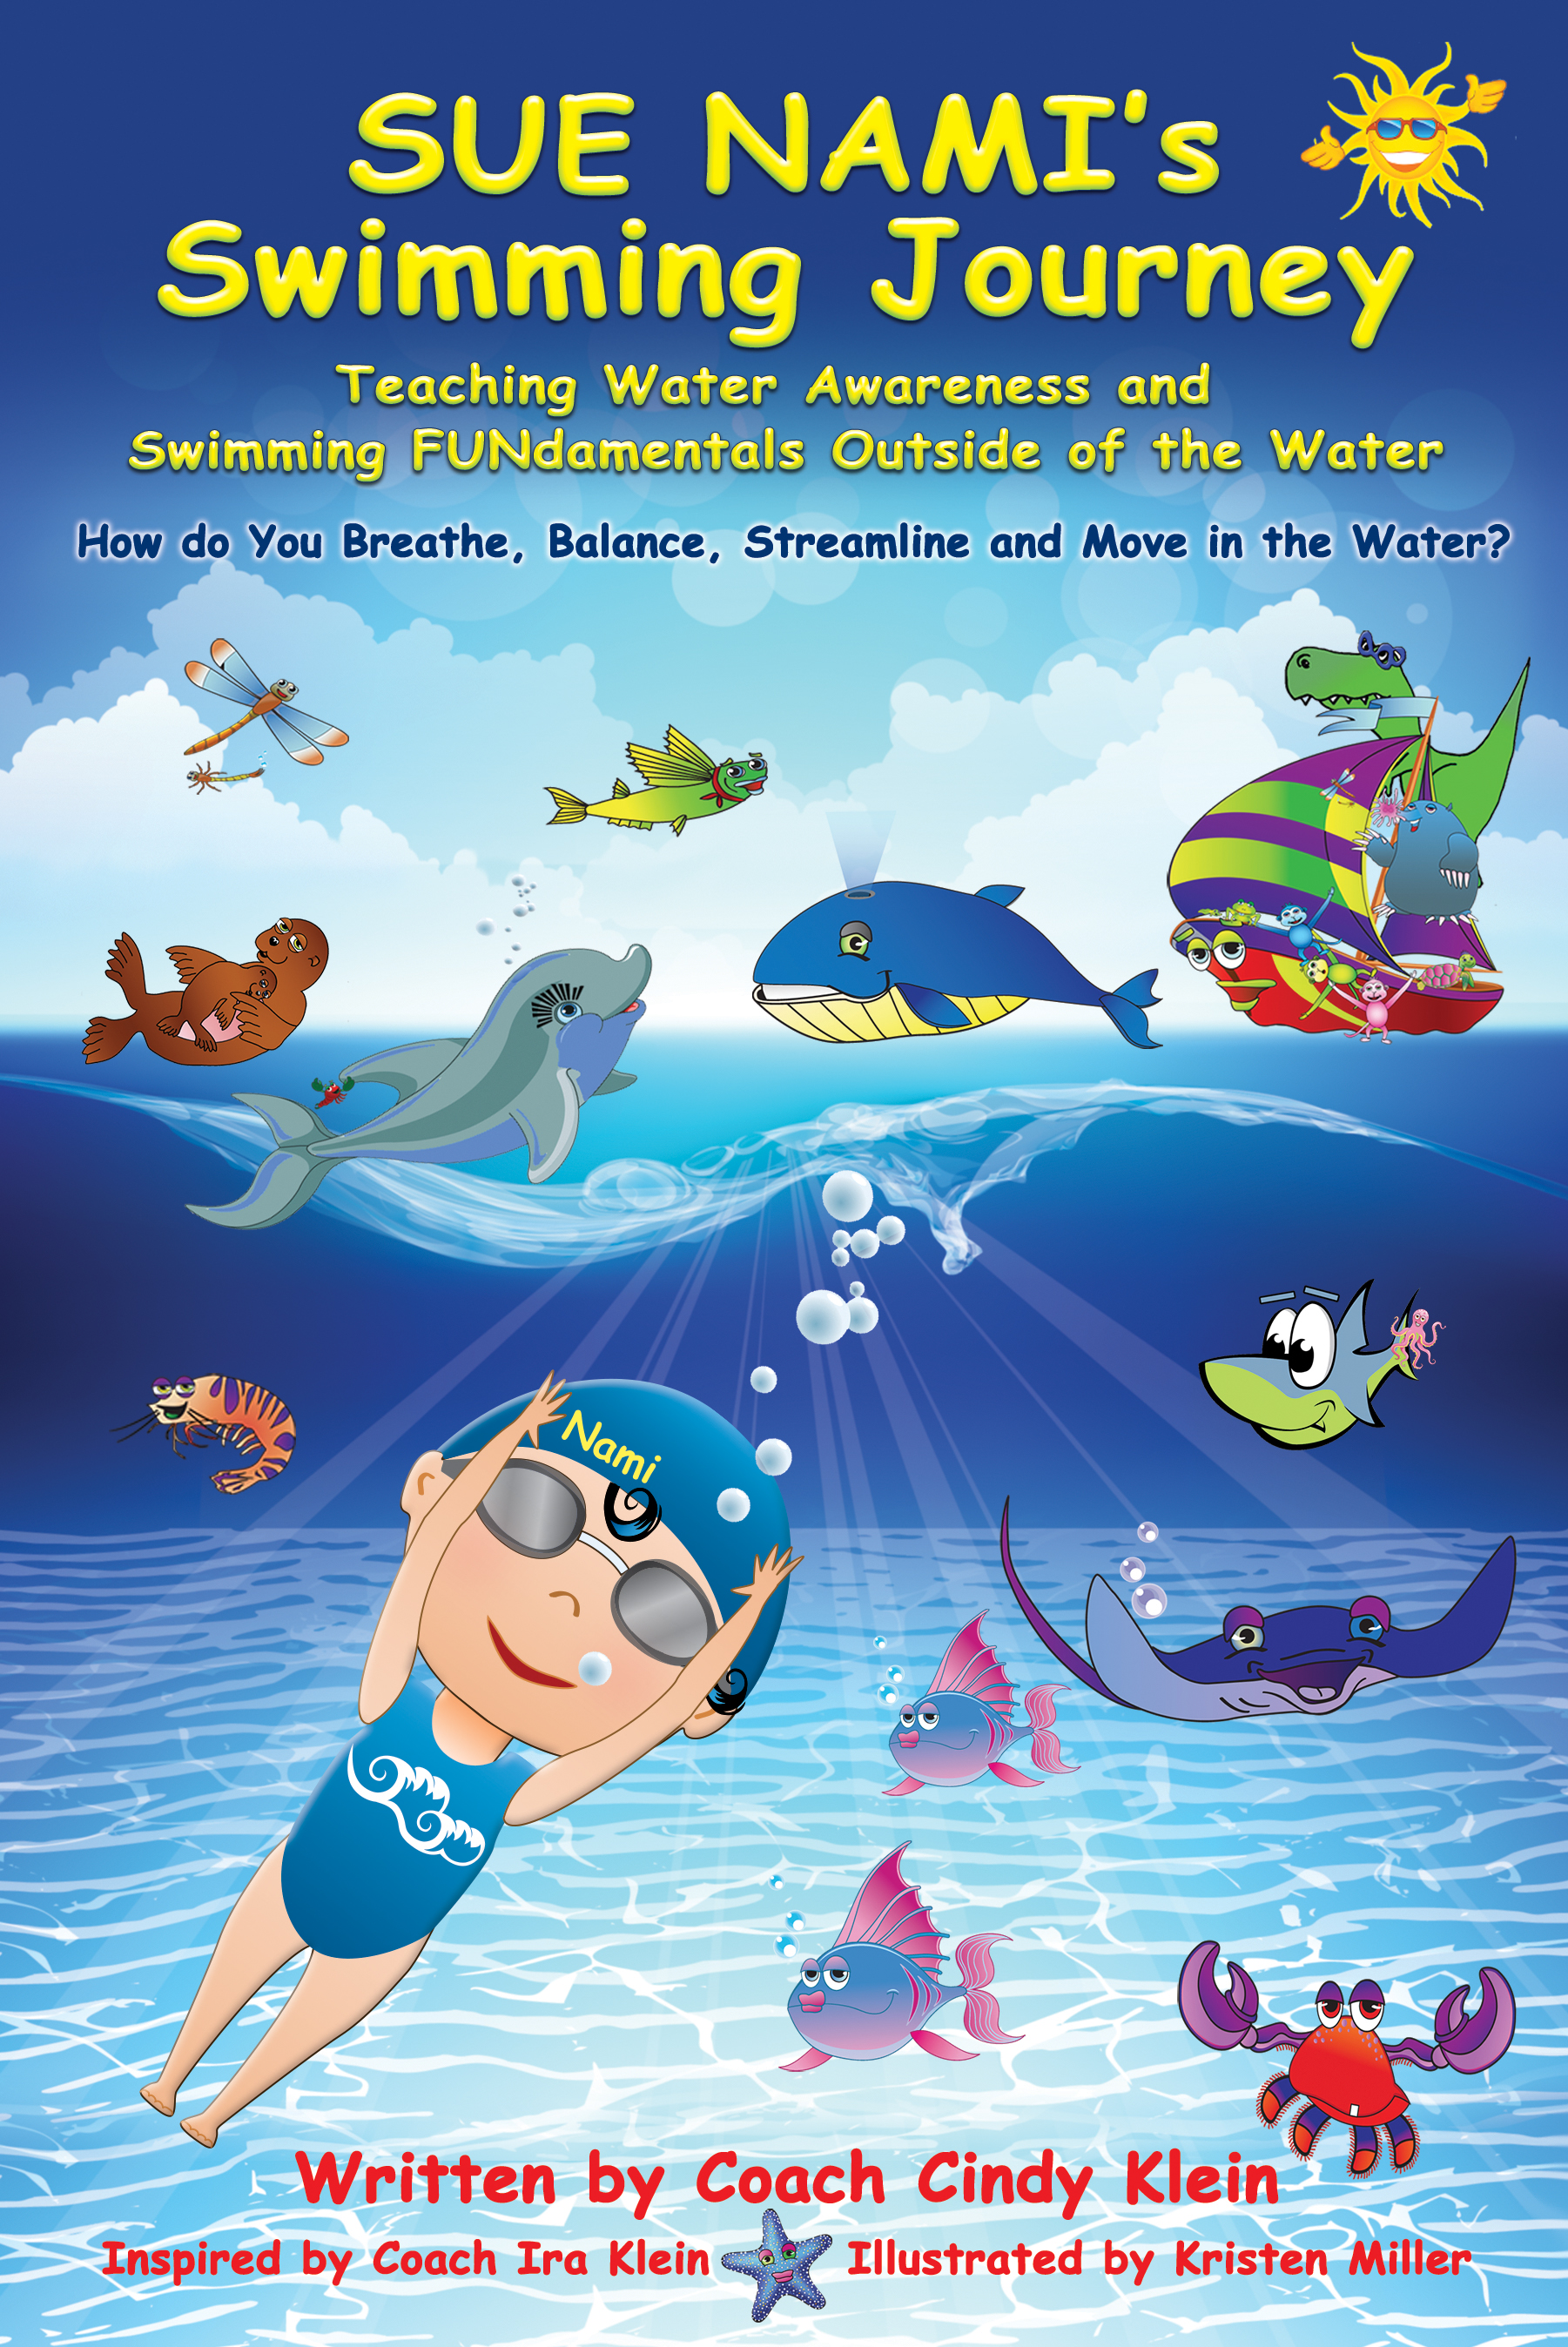 SUE NAMI's Swimming Journey- the BOOK